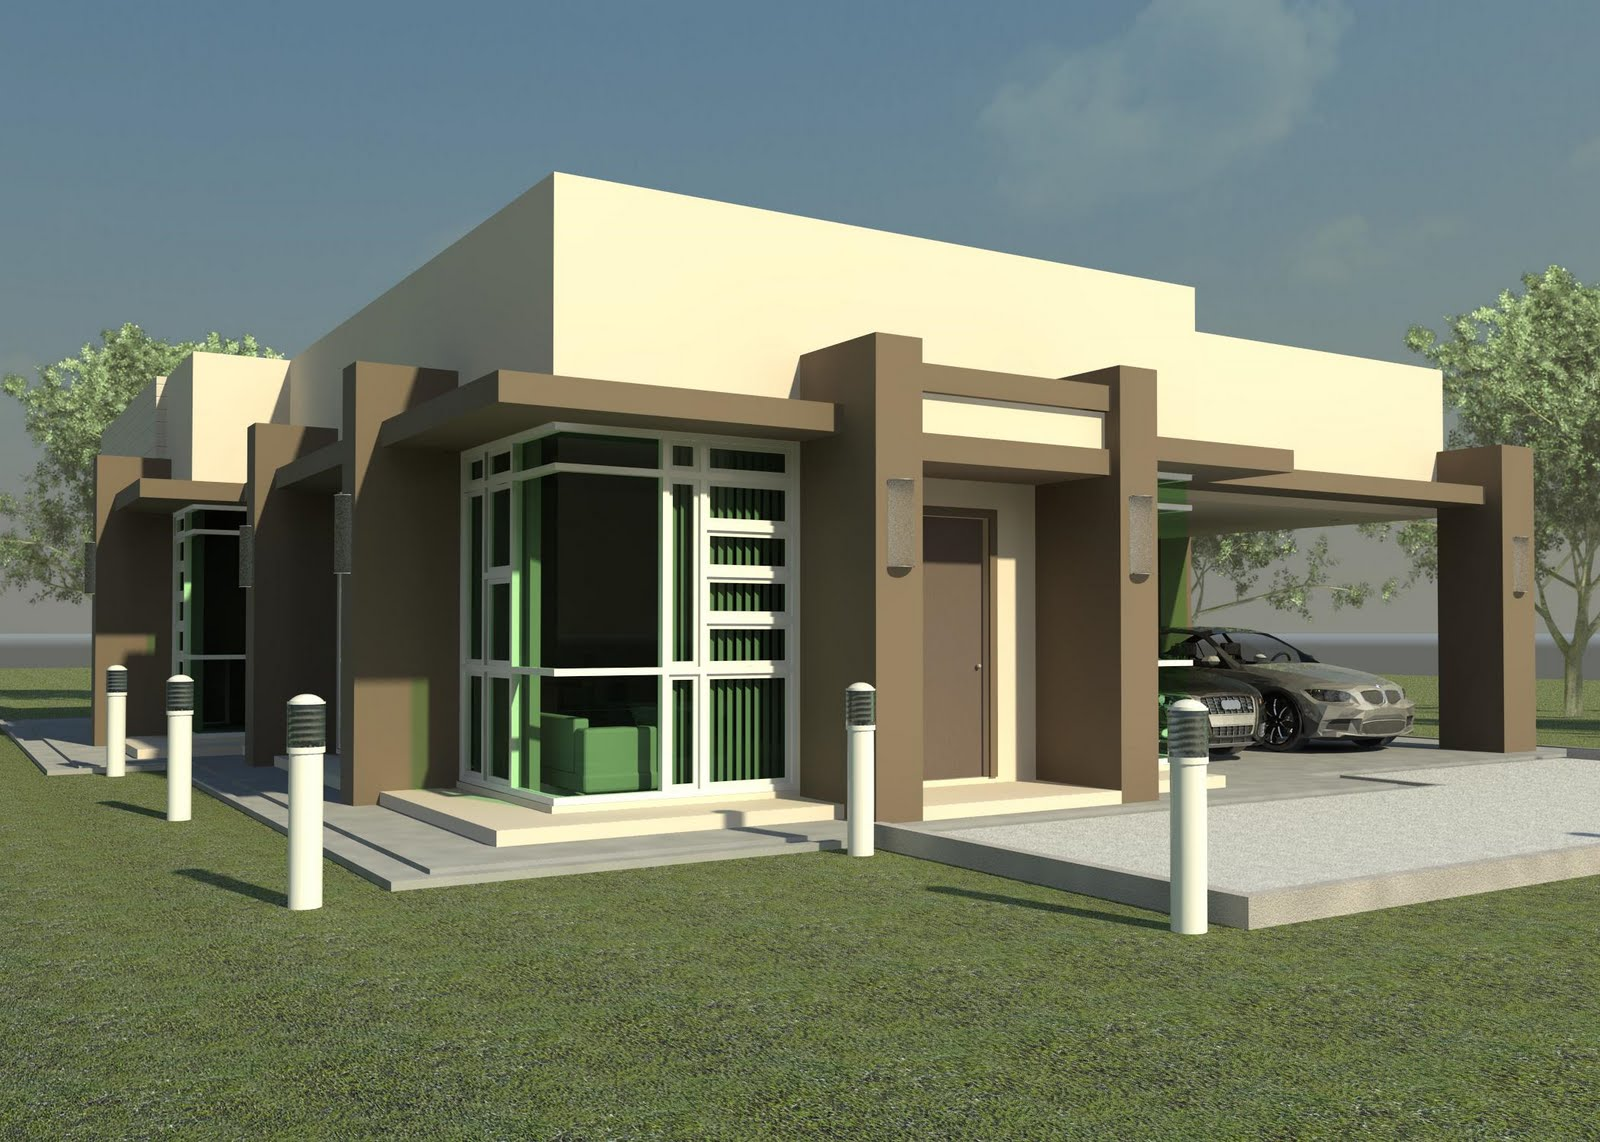 New home designs latest modern small homes designs exterior for Innovative house plans designs